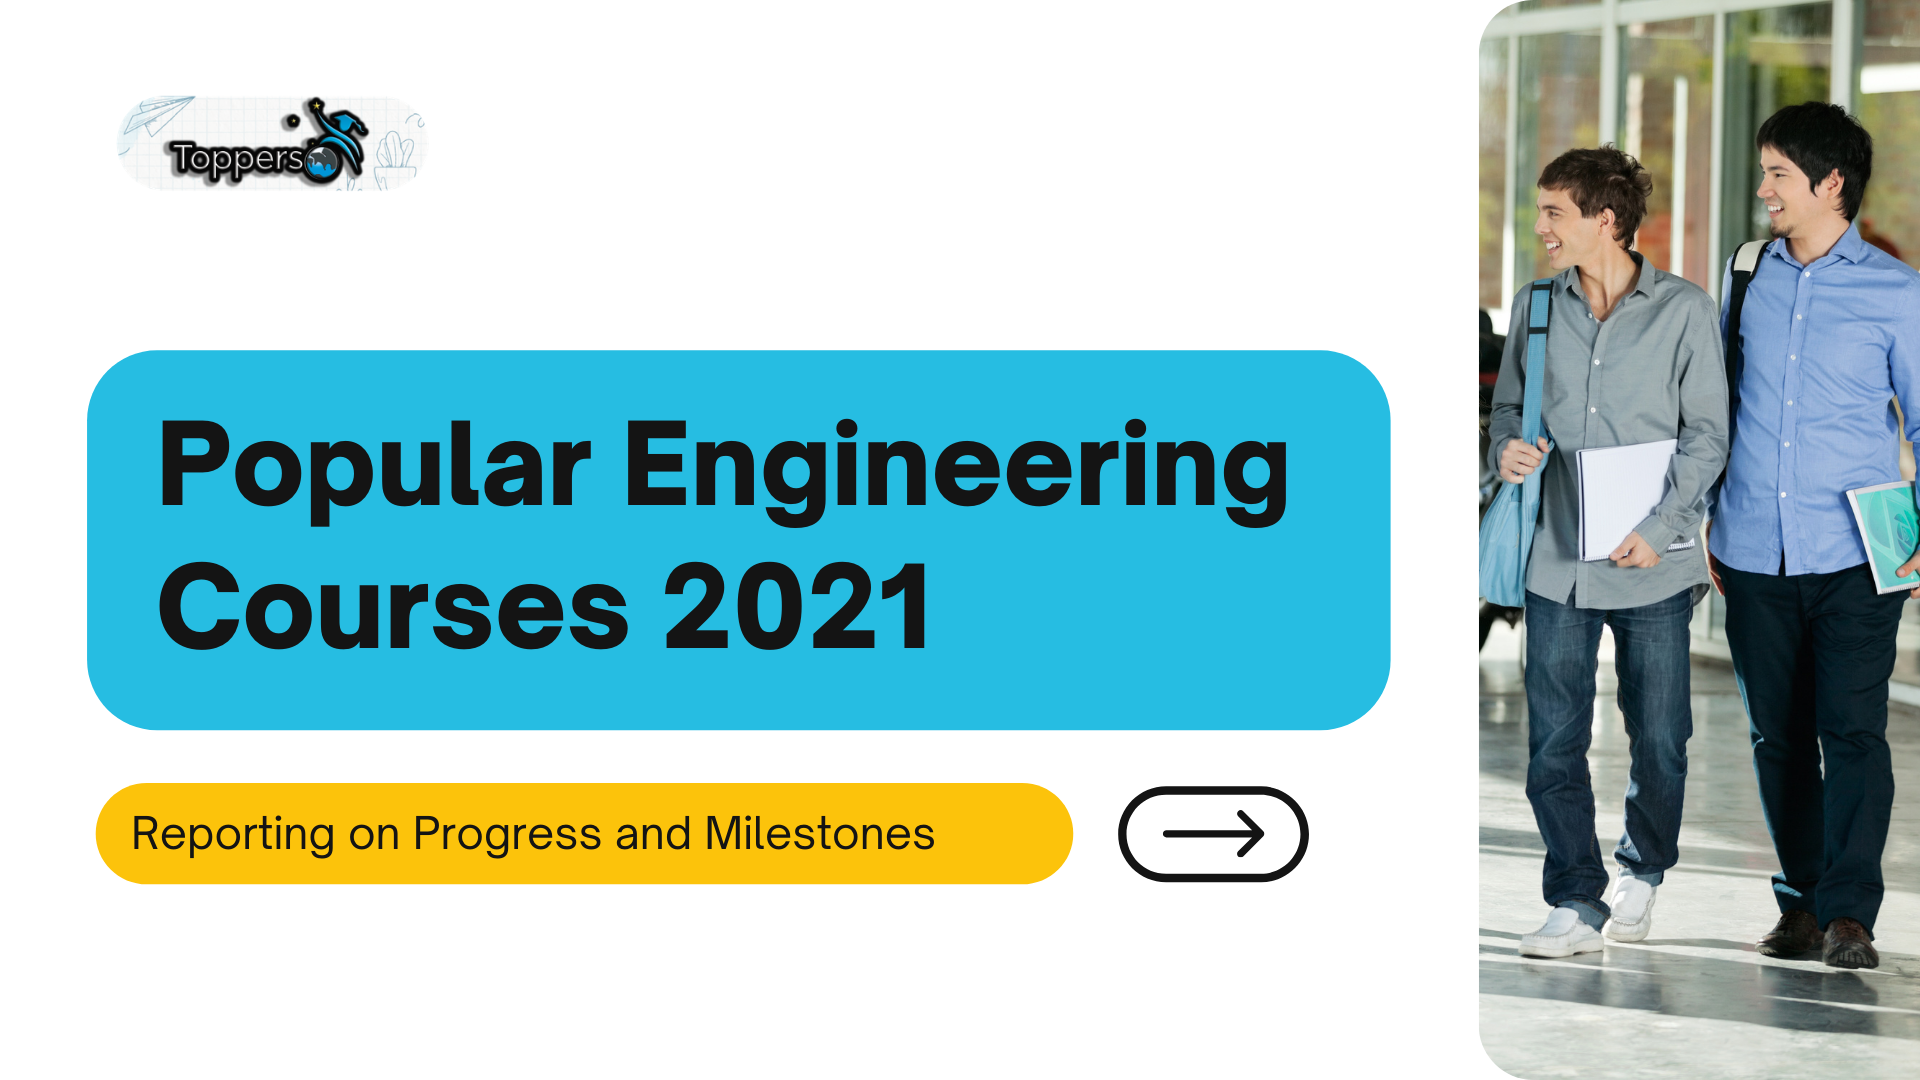 Popular Engineering Courses 2021